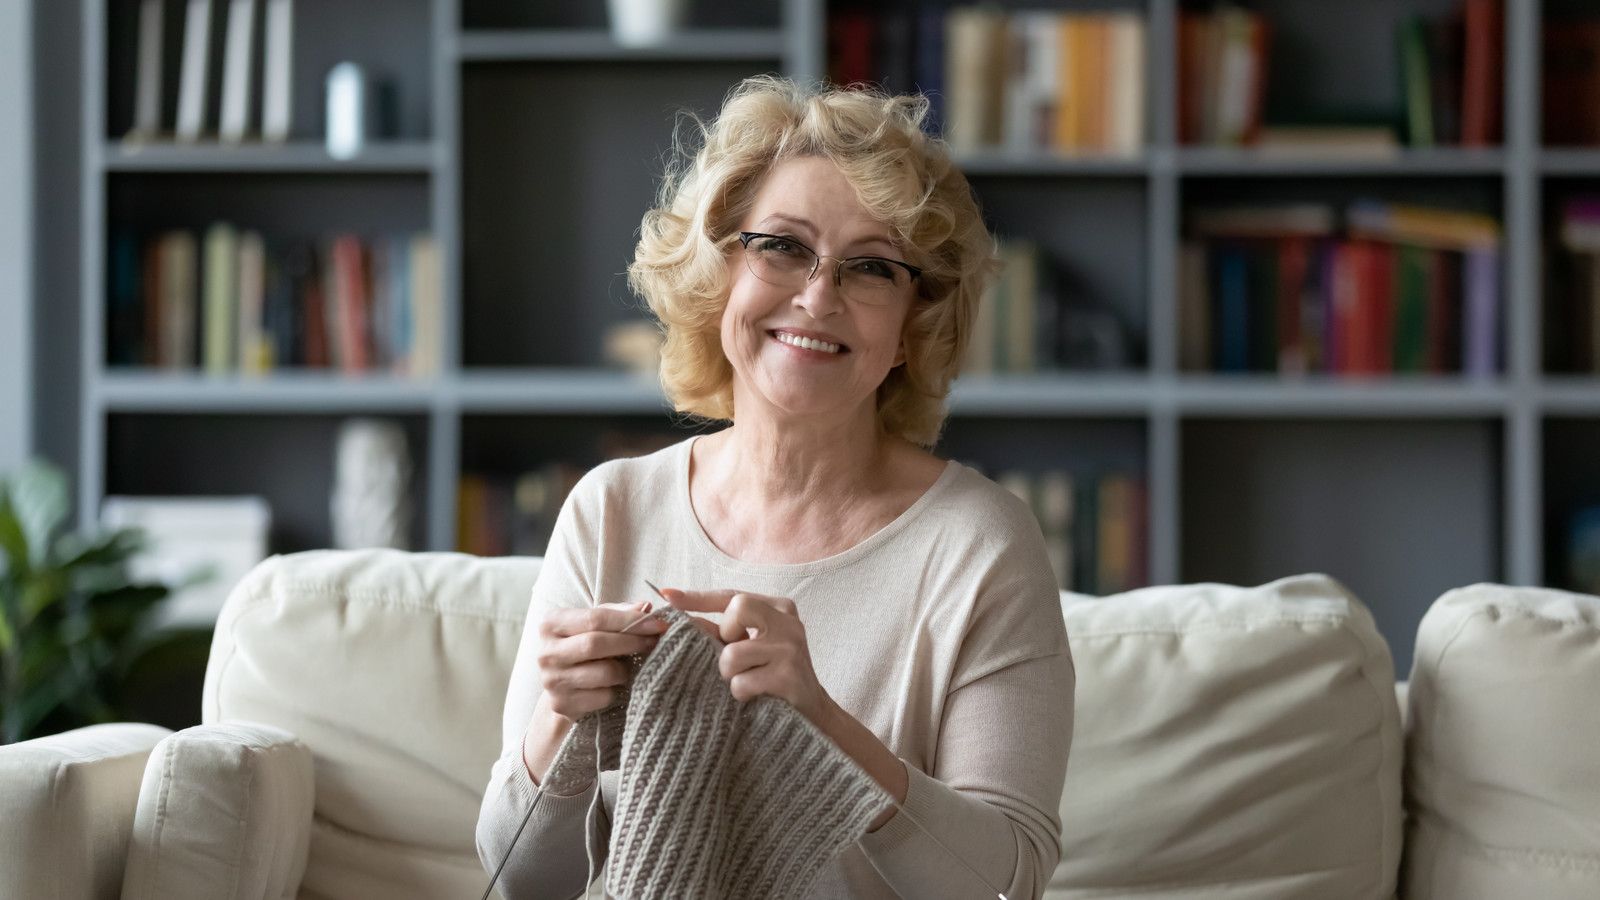 Happy senior woman sitting on the couch knitting